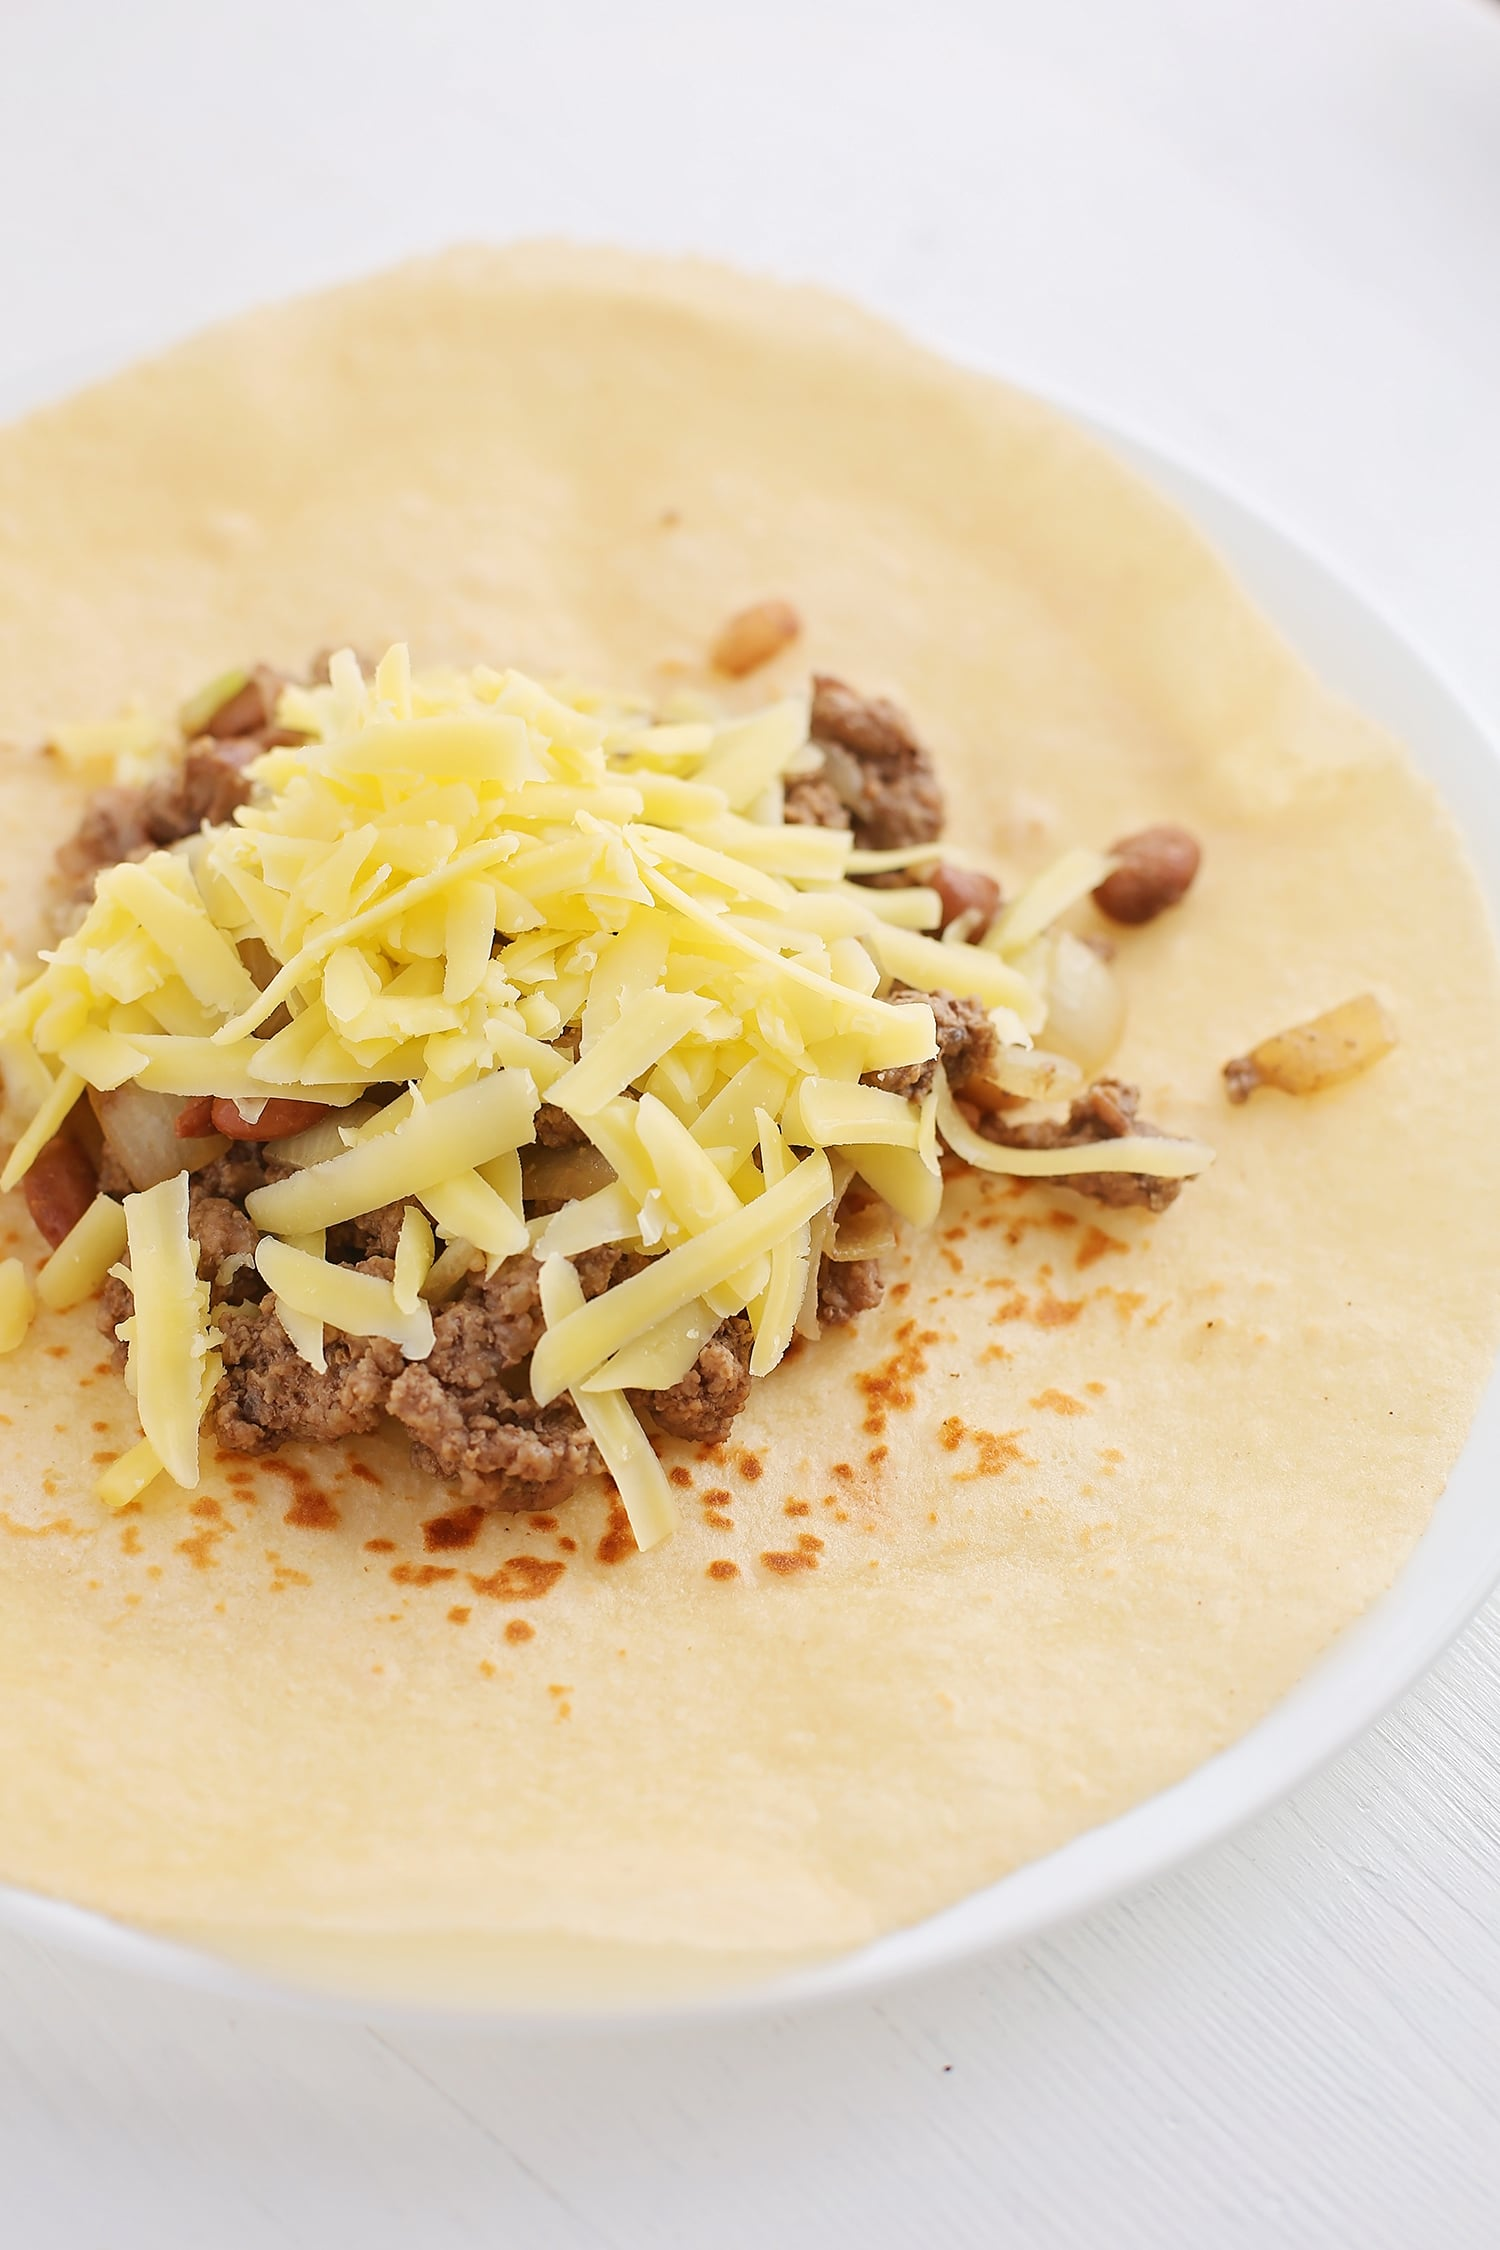 Tortilla with Beef and Sweet Onions, and shredded cheese on top, before wrapping